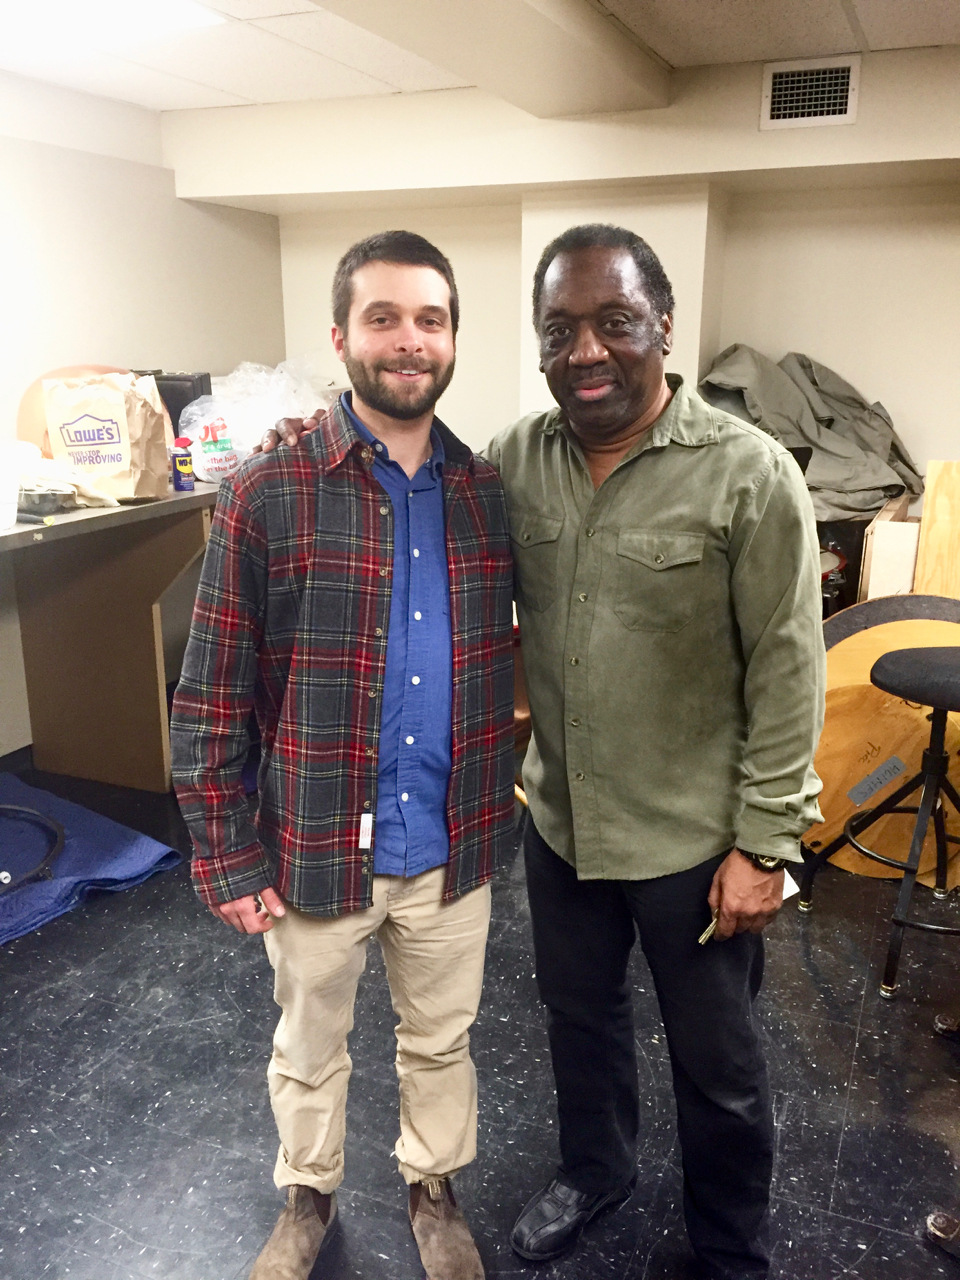 Backstage of Benaroya Hall with my teacher, Mike Crusoe - Principal timpanist of the Seattle Symphony Orchestra! (February, 2017)